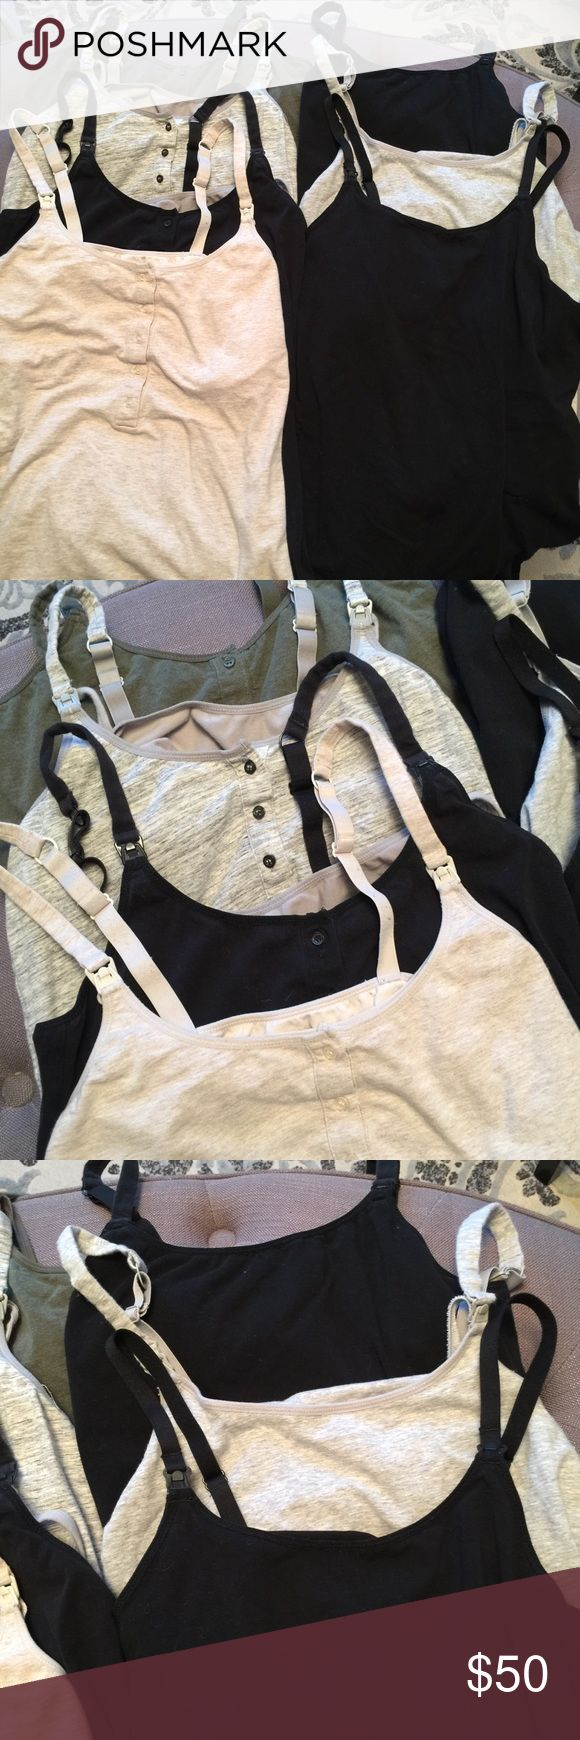 🤰🏻7 PC BUNDLE MATERNITY NURSING TANKS By Target brand Gilligan @ O'Malley. All size L. In mint condition, no stains, rips or imperfections. Light signs of wear. The ones without buttons have only been worn 2 times at most. All have been properly washed & dried.  💋 Reasonable offers welcome. NOTE: anything below 30% is NOT reasonable 🙄 〰 ALL measurements are approximate  🚫 Sorry, NO trades ❗️NO MODELING pics 📦 Ships w/in 24 hrs 👌🏼 Gilligan & O'Malley Tops Tank Tops